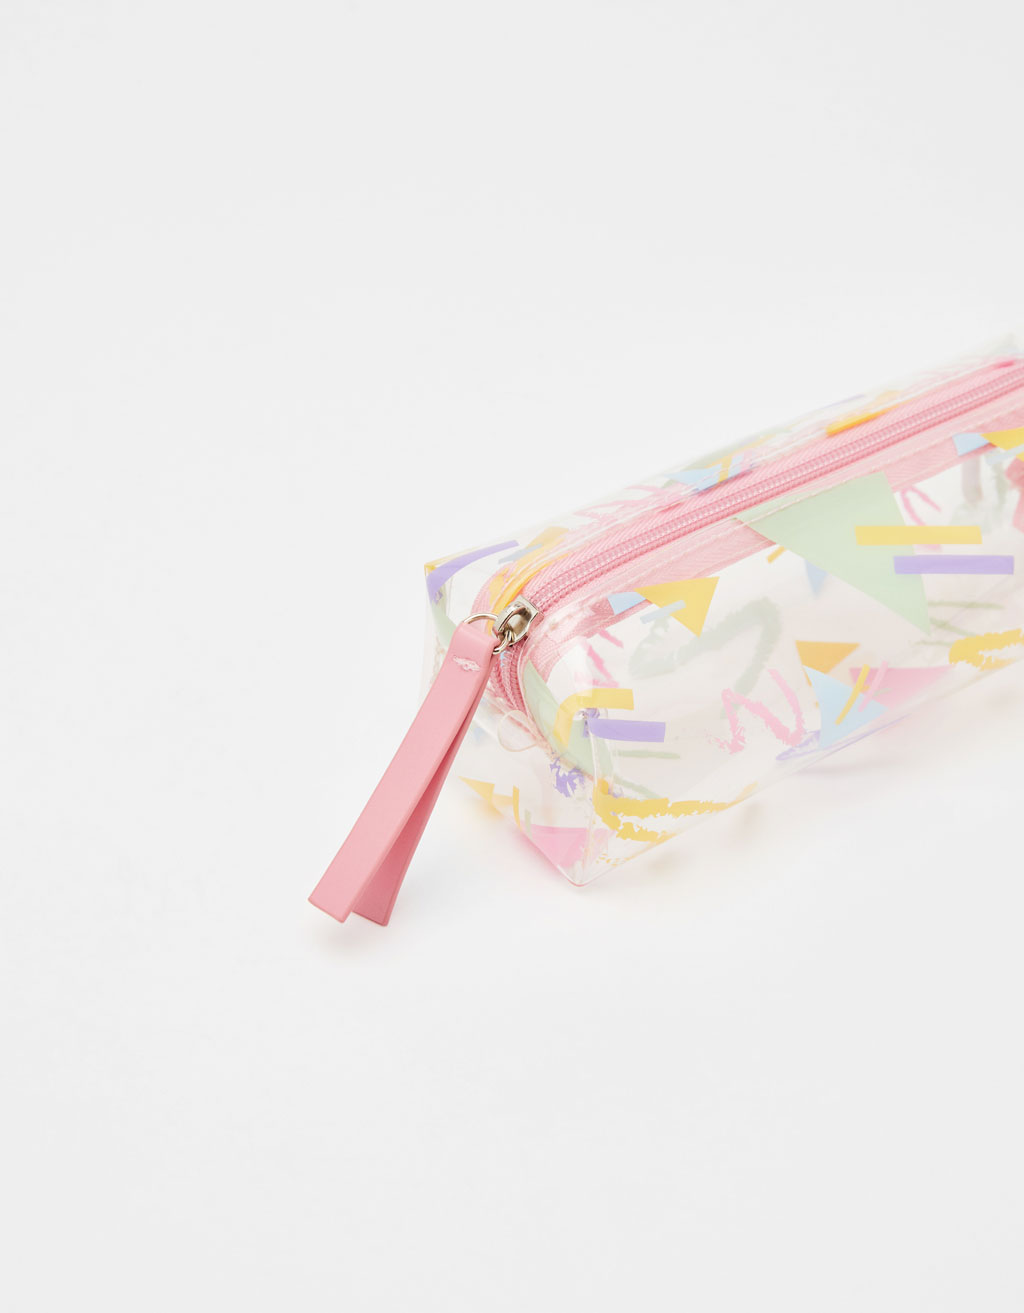 Transparent 80s pencil case